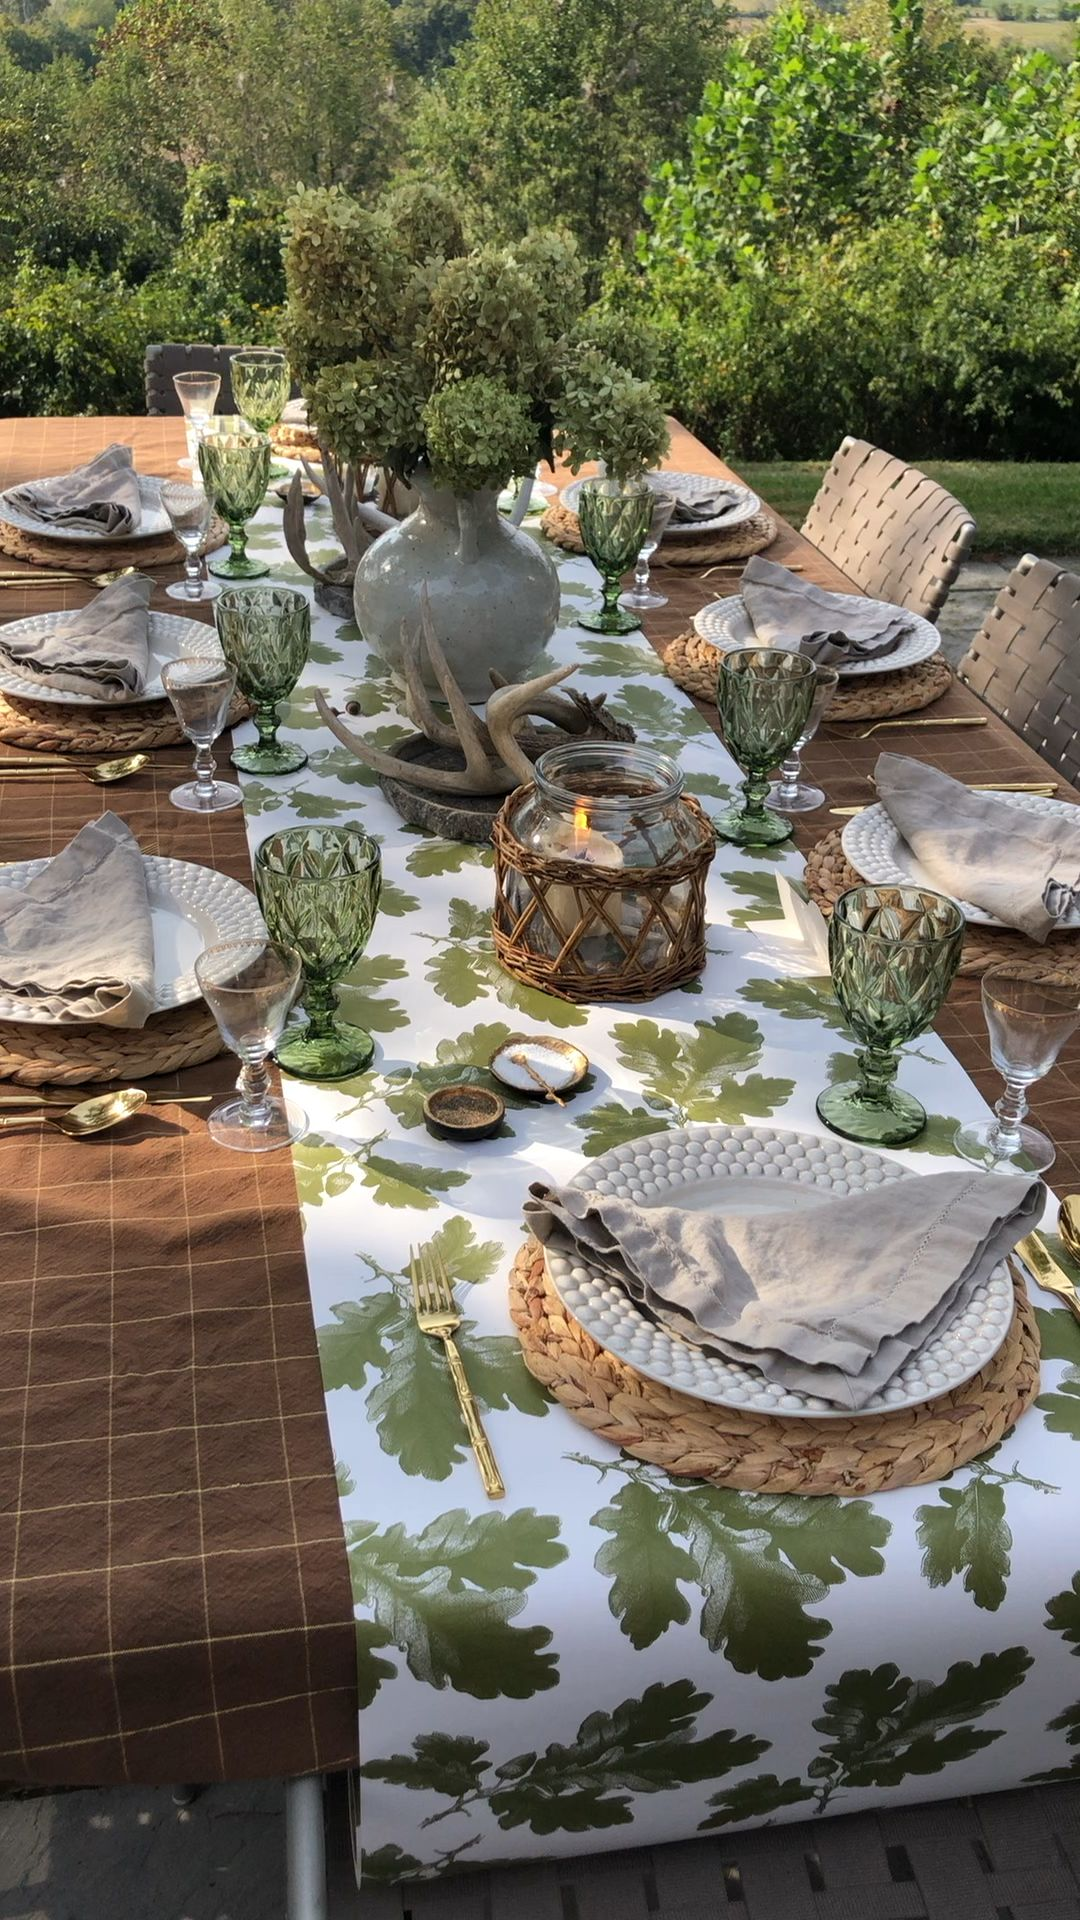 We are obsessed with this green and brown Tablescape utilizing our Fall Holiday Tablecloth, Oakleaf Runner, Green Goblets, Water Hyacinth Placemats, Ecru Napkins and Wicker Hurricanes. It's fresh and will take you thru fall with a effortless elegance that's easy and quick to set up.